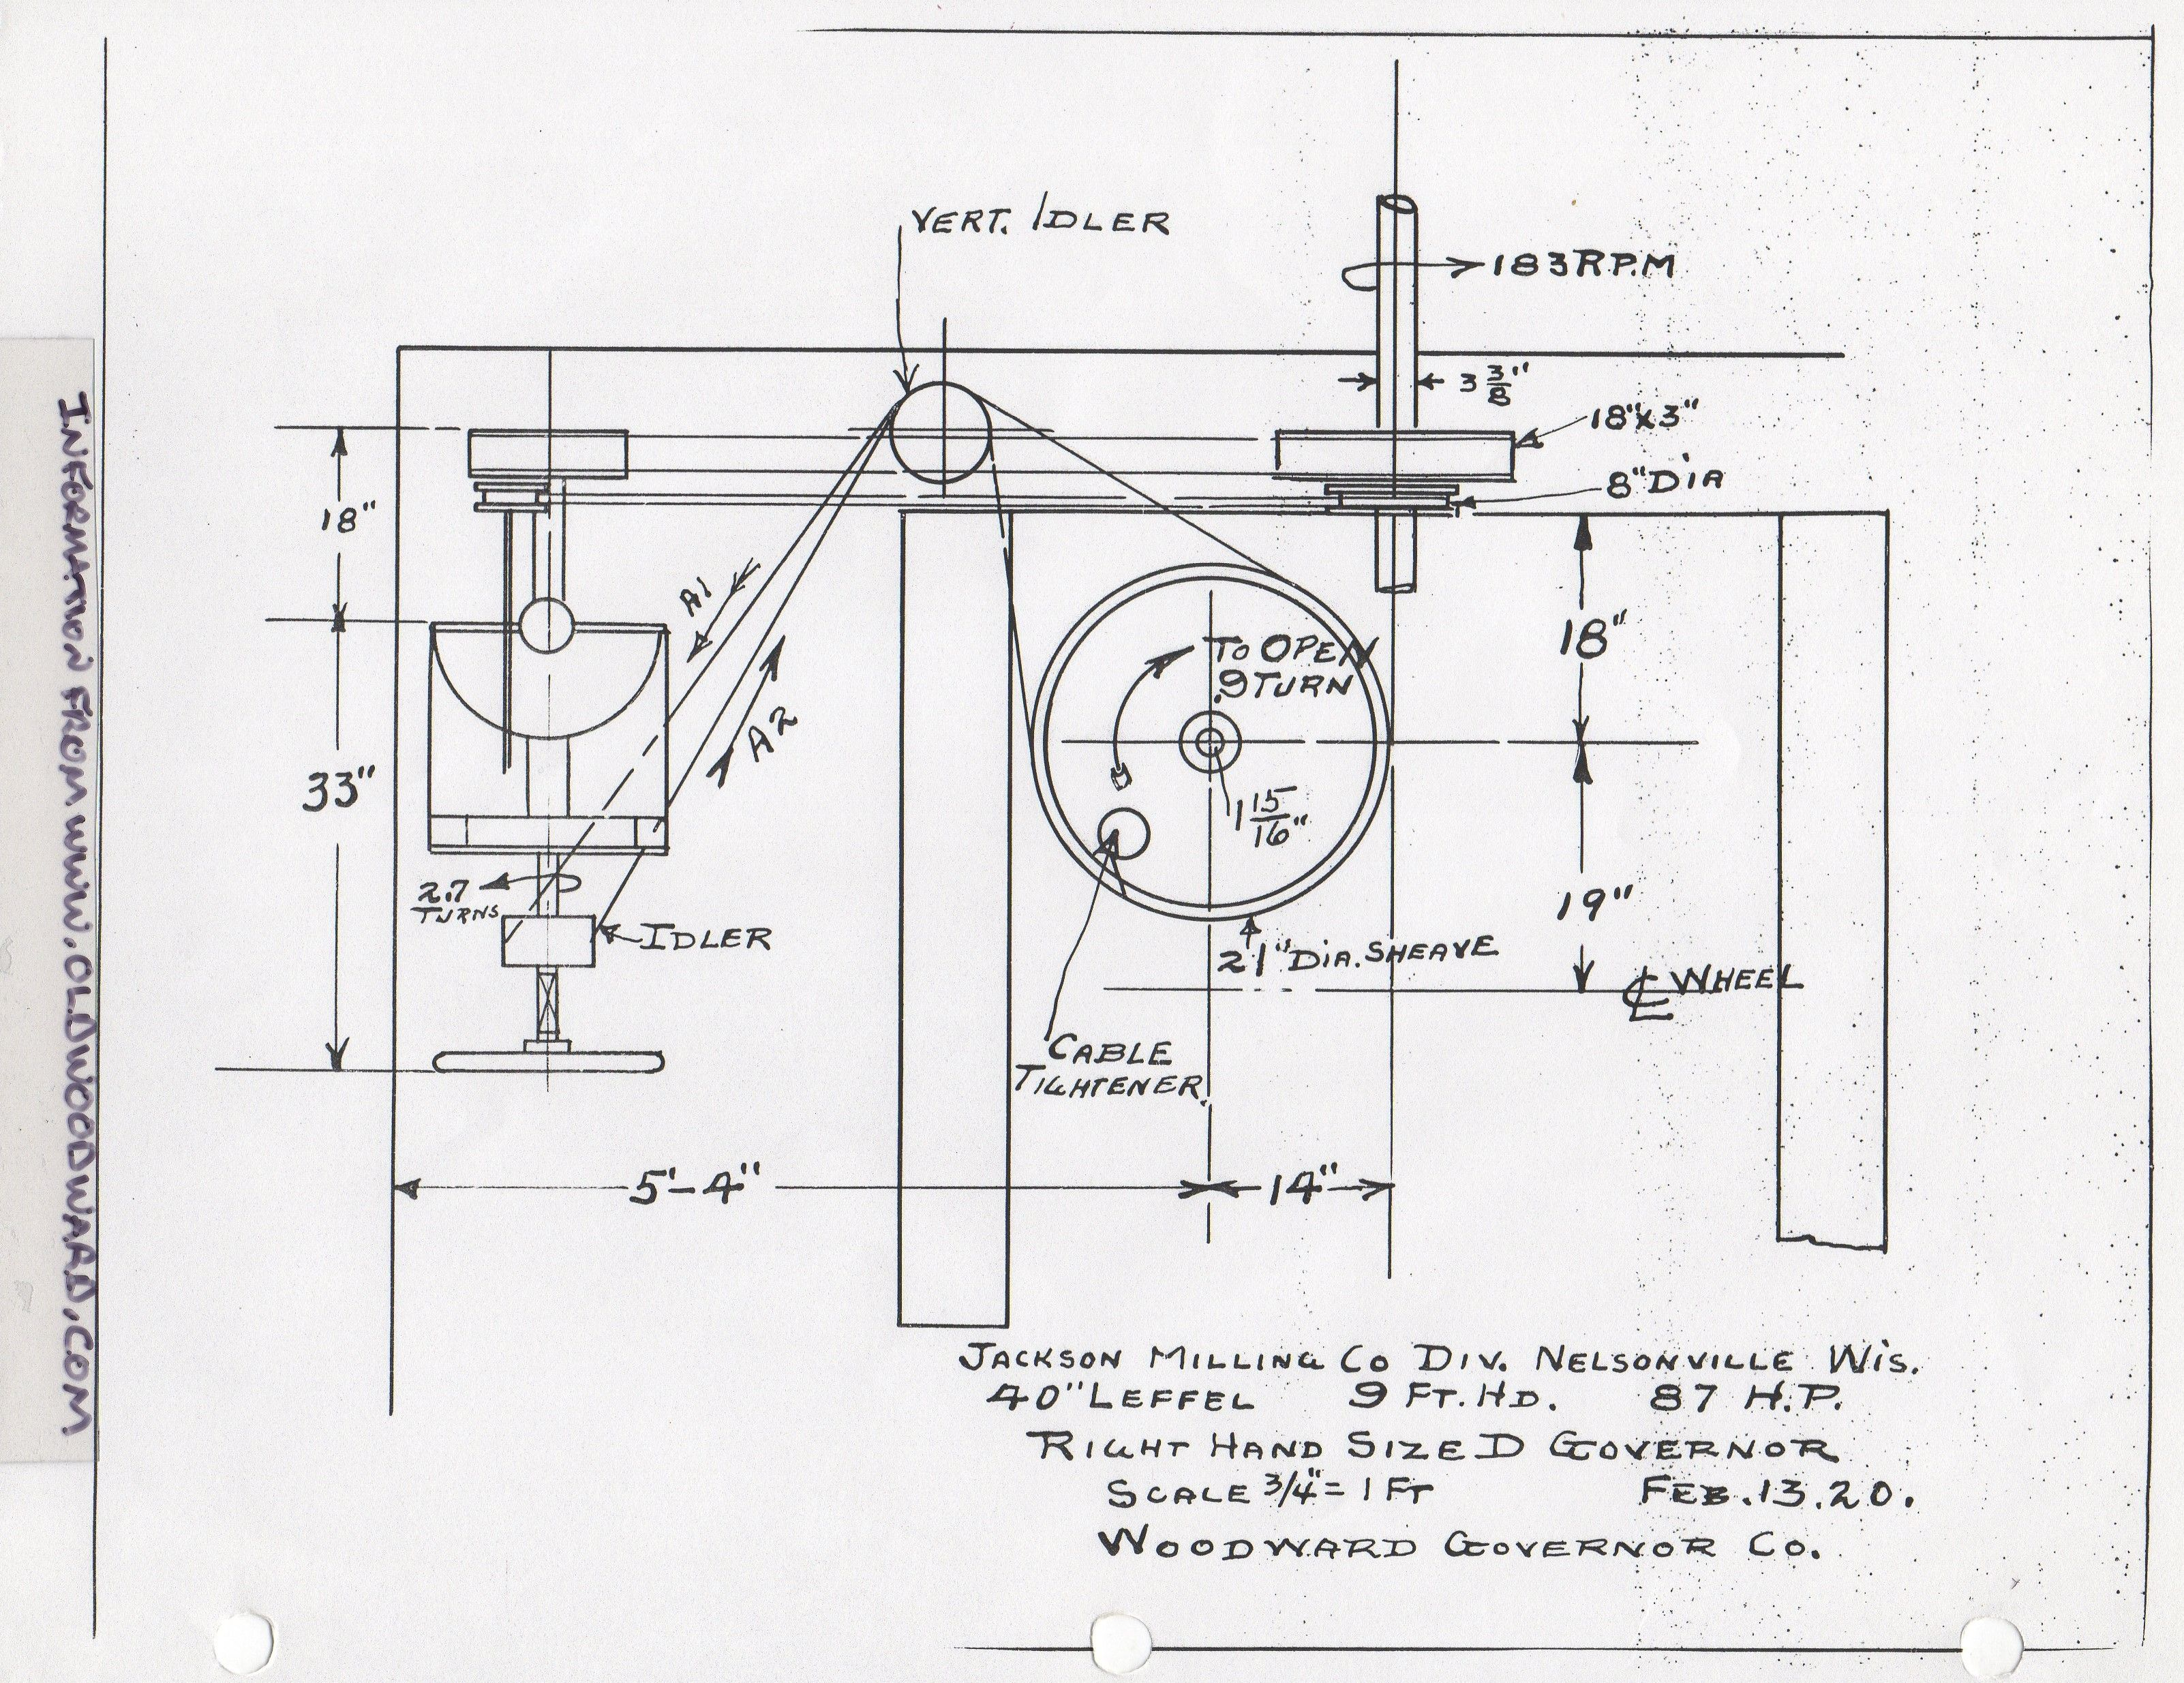 Woodward Governor Company schematic drawing from 1920